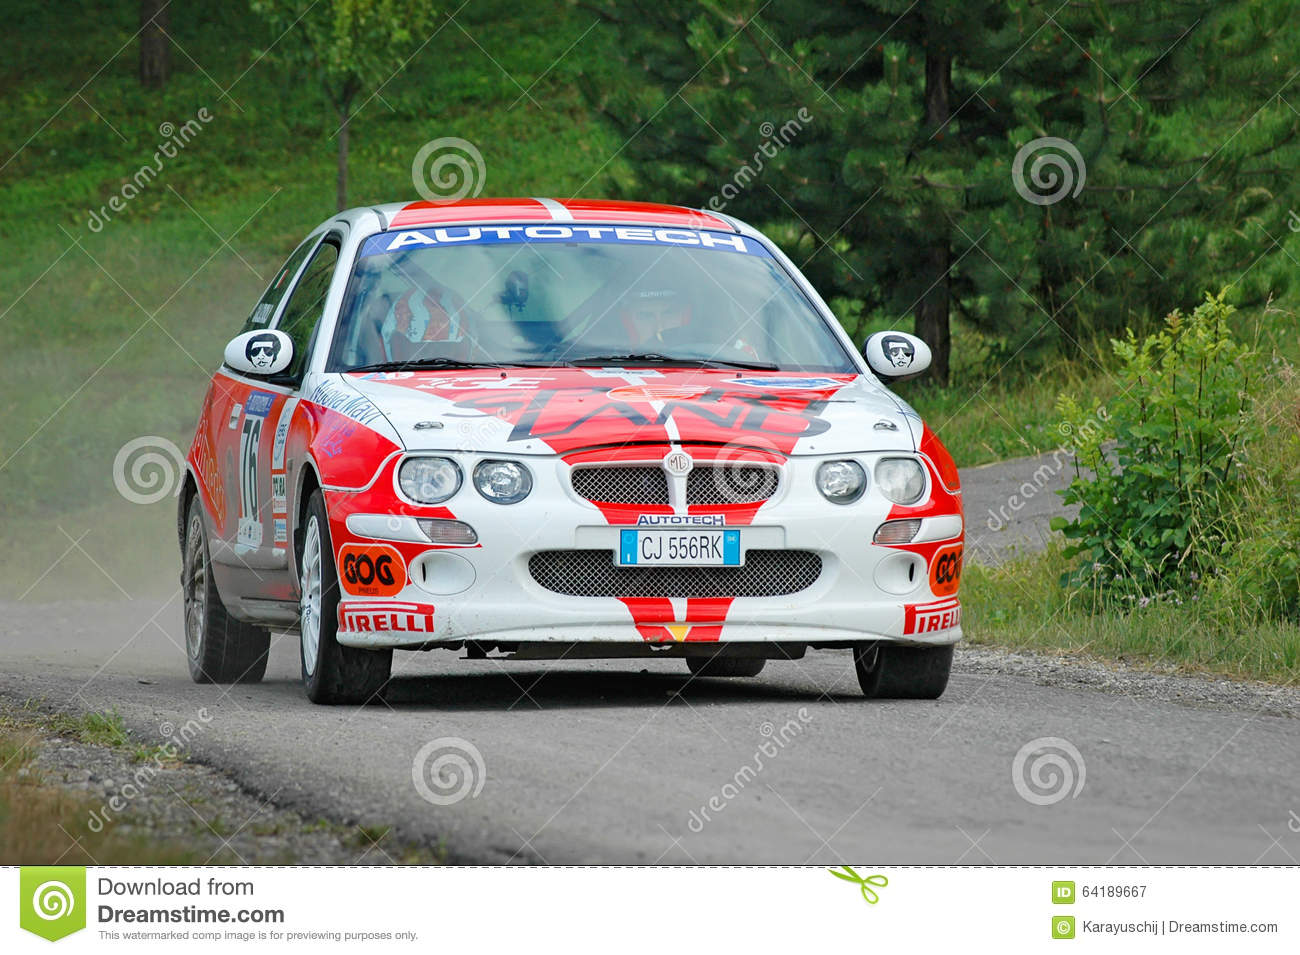 Unidentified Drivers On A White And Red Vintage MG ZR Racing Car ...